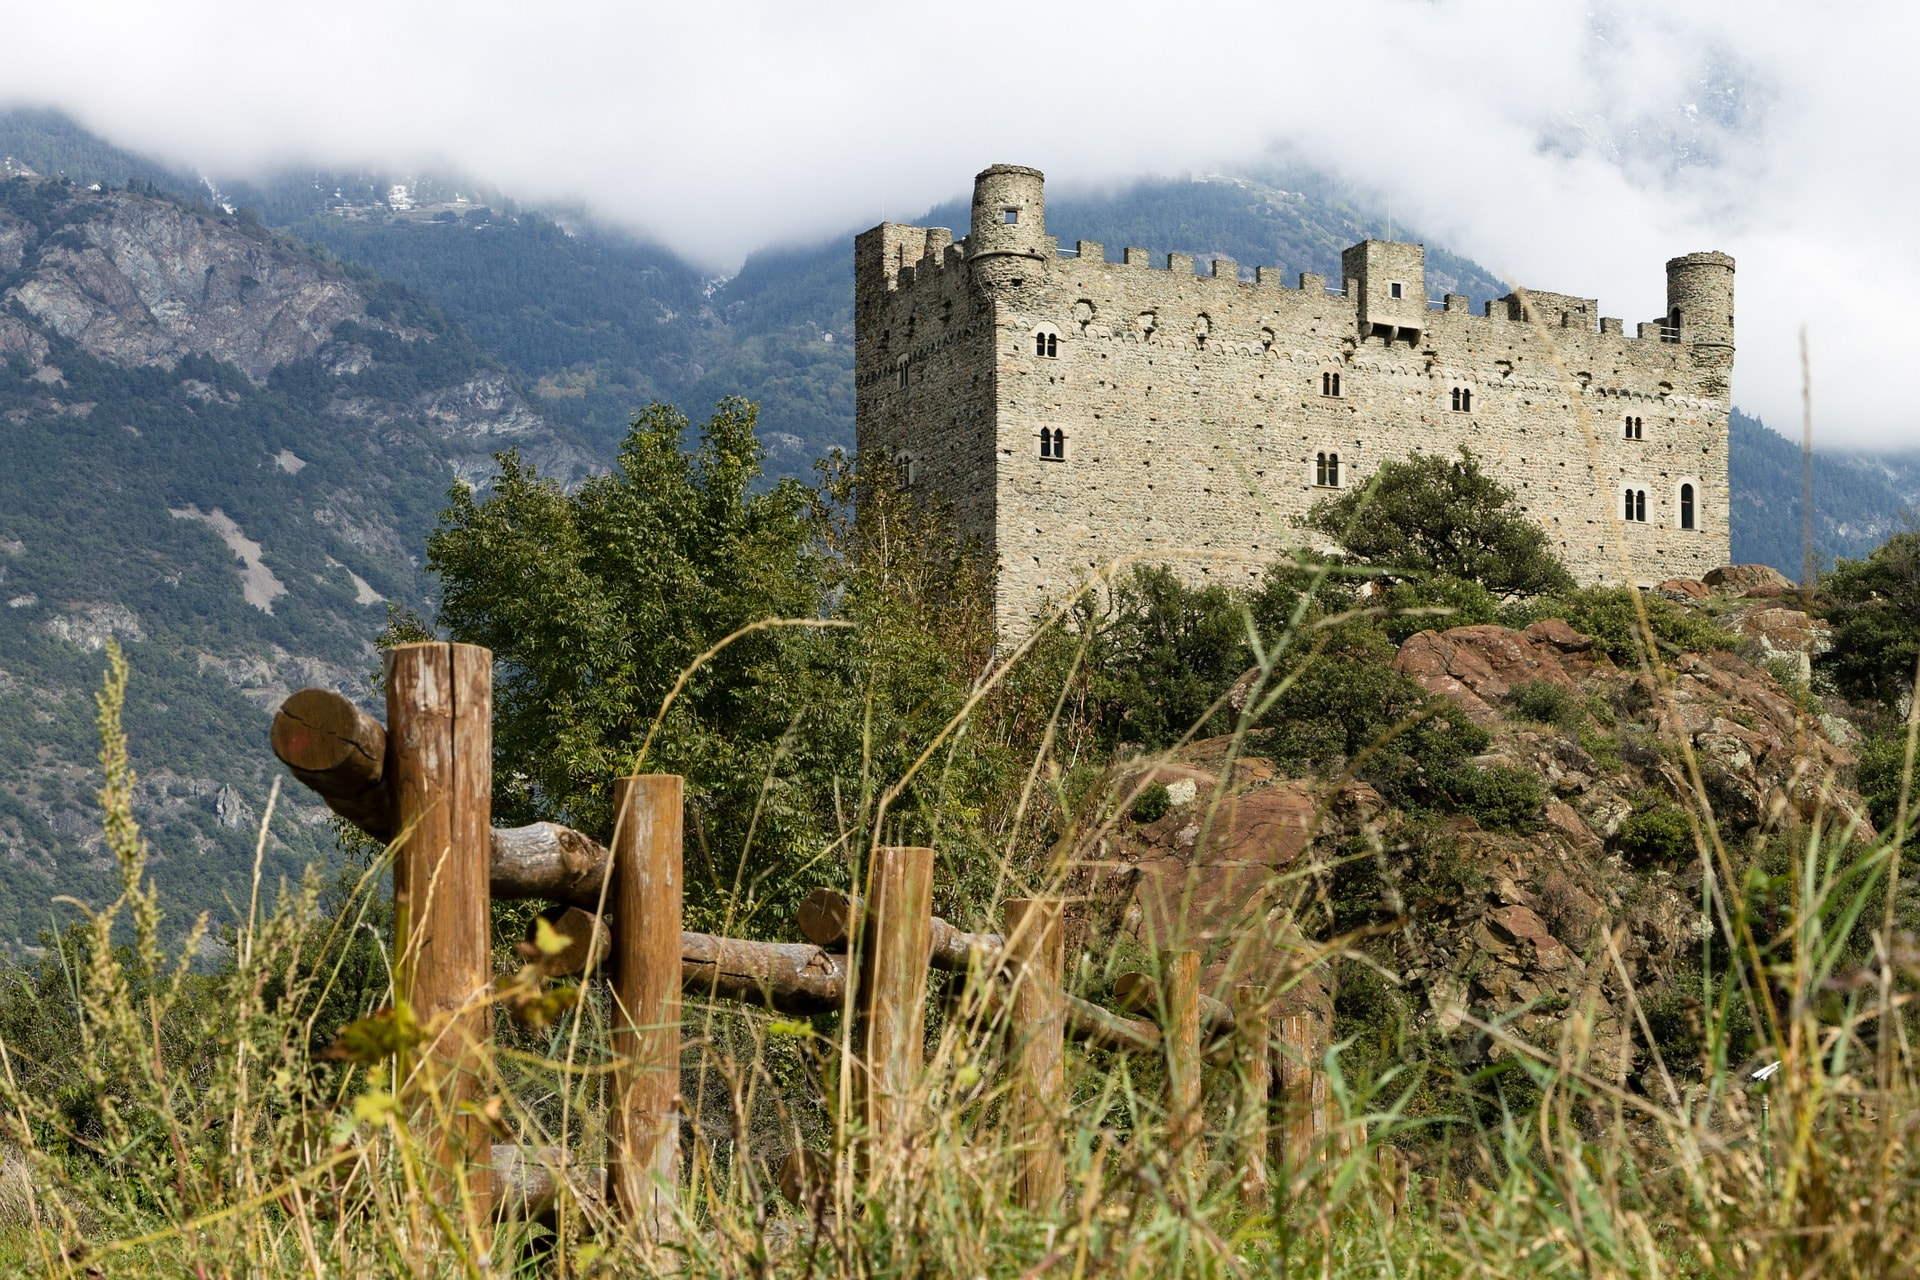 chateau ussel vallee d Aoste